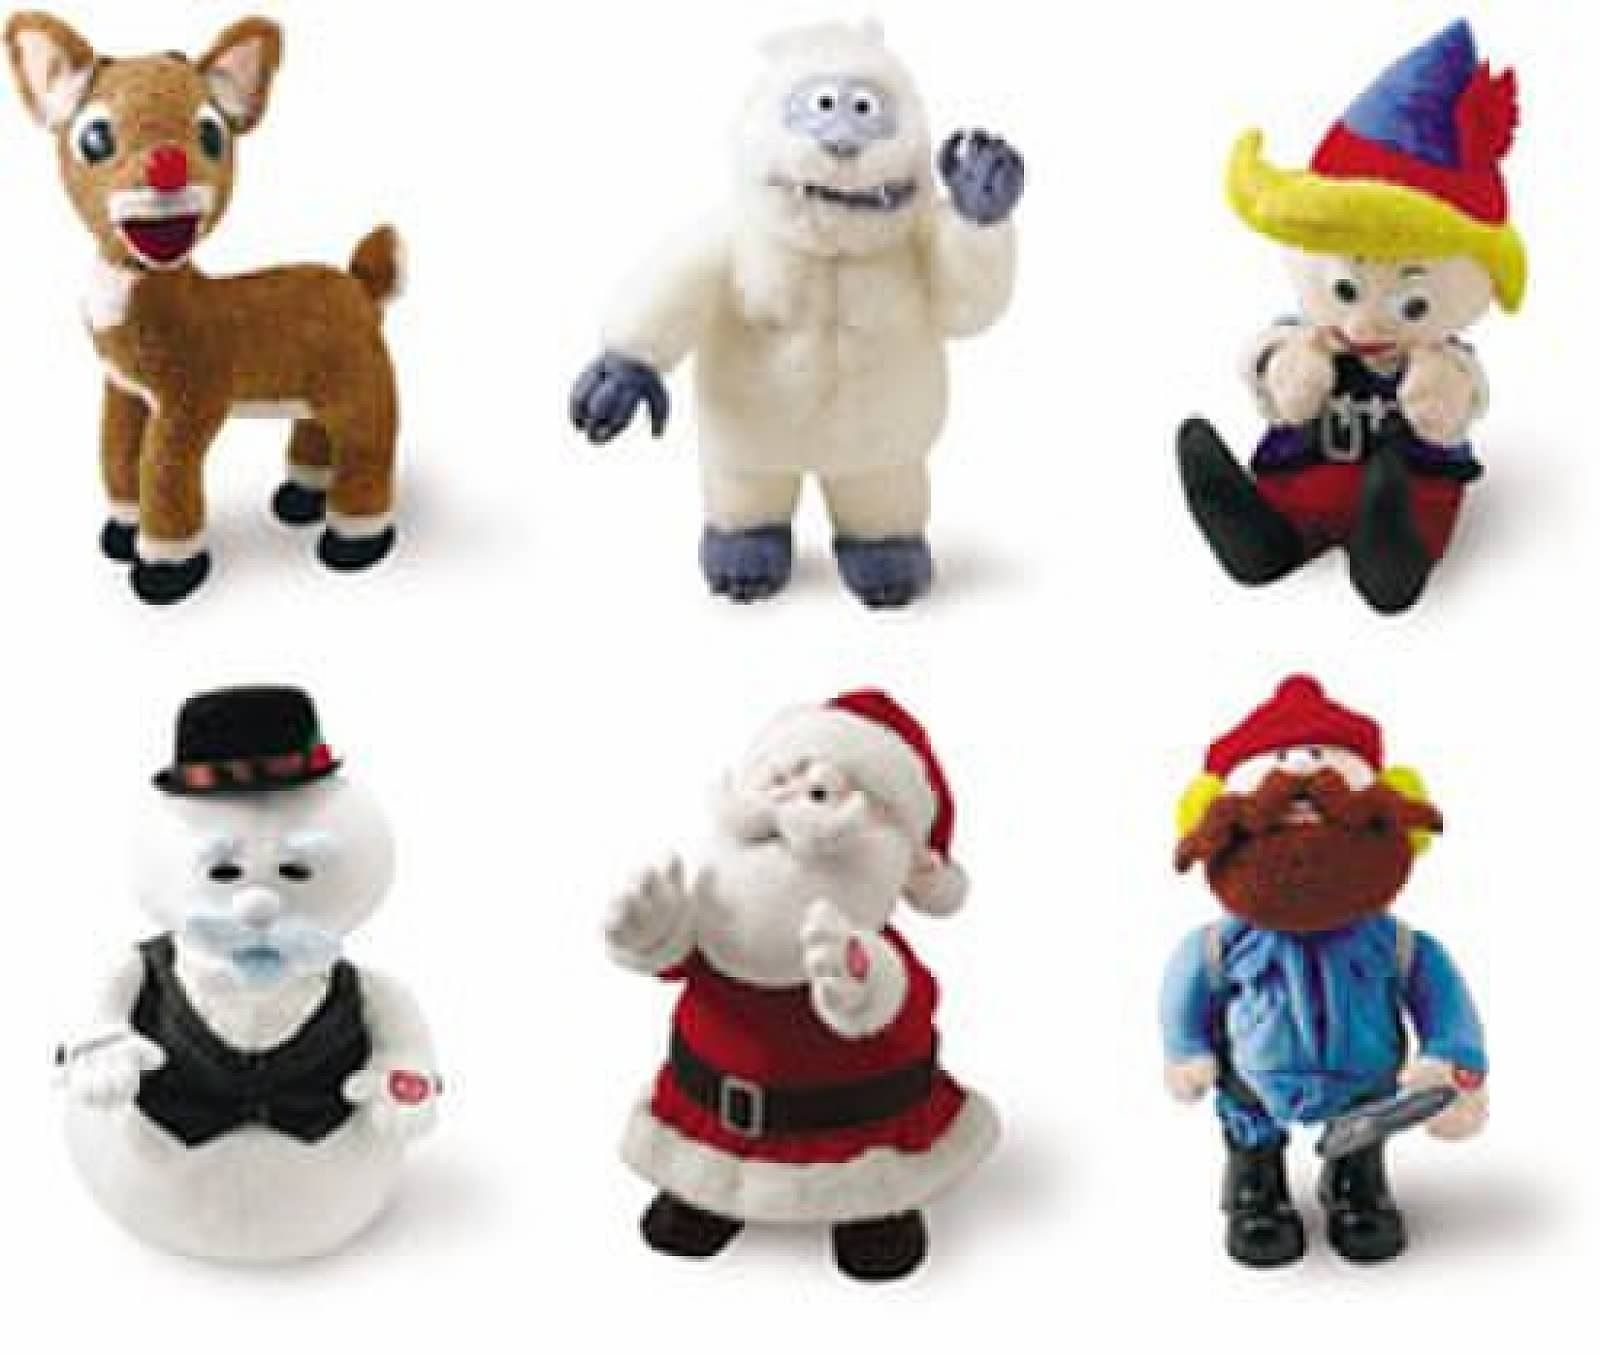 Christmas village cake toppers from the classic clay